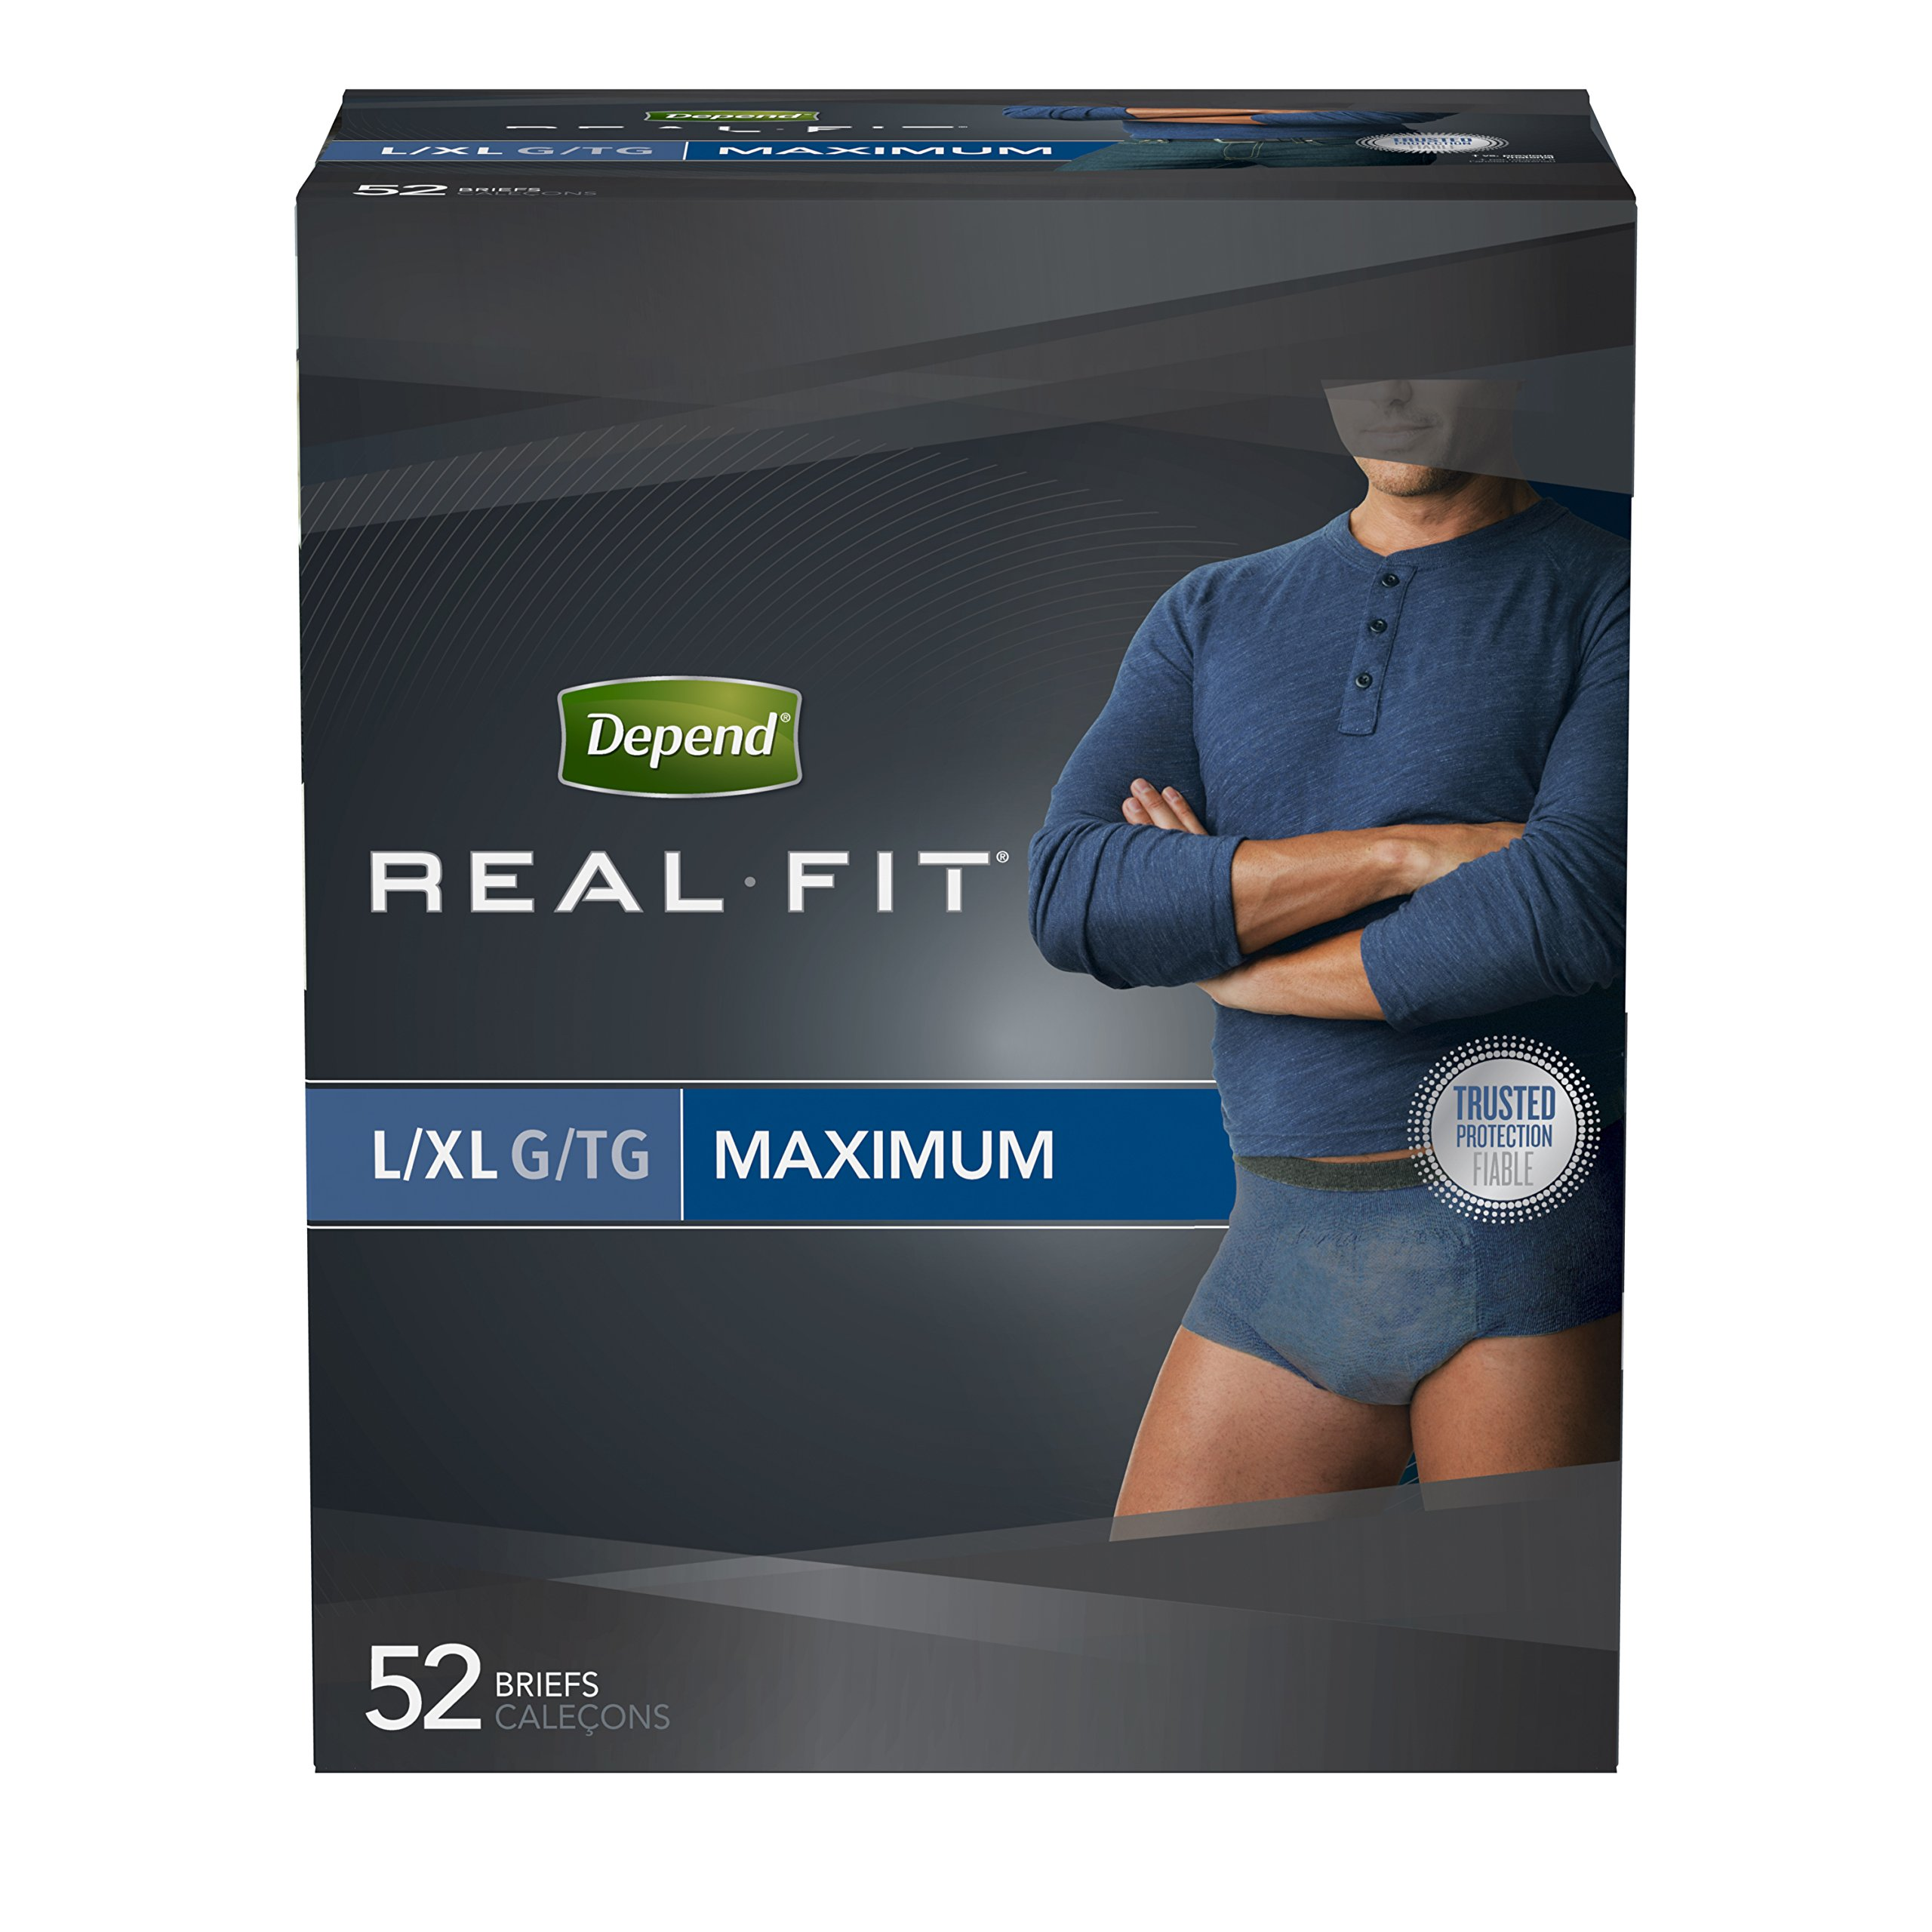 Depend Real Fit Incontinence Briefs for Men, Maximum Absorbency, L/XL, blue 2 PACK (52 Count) DNGH